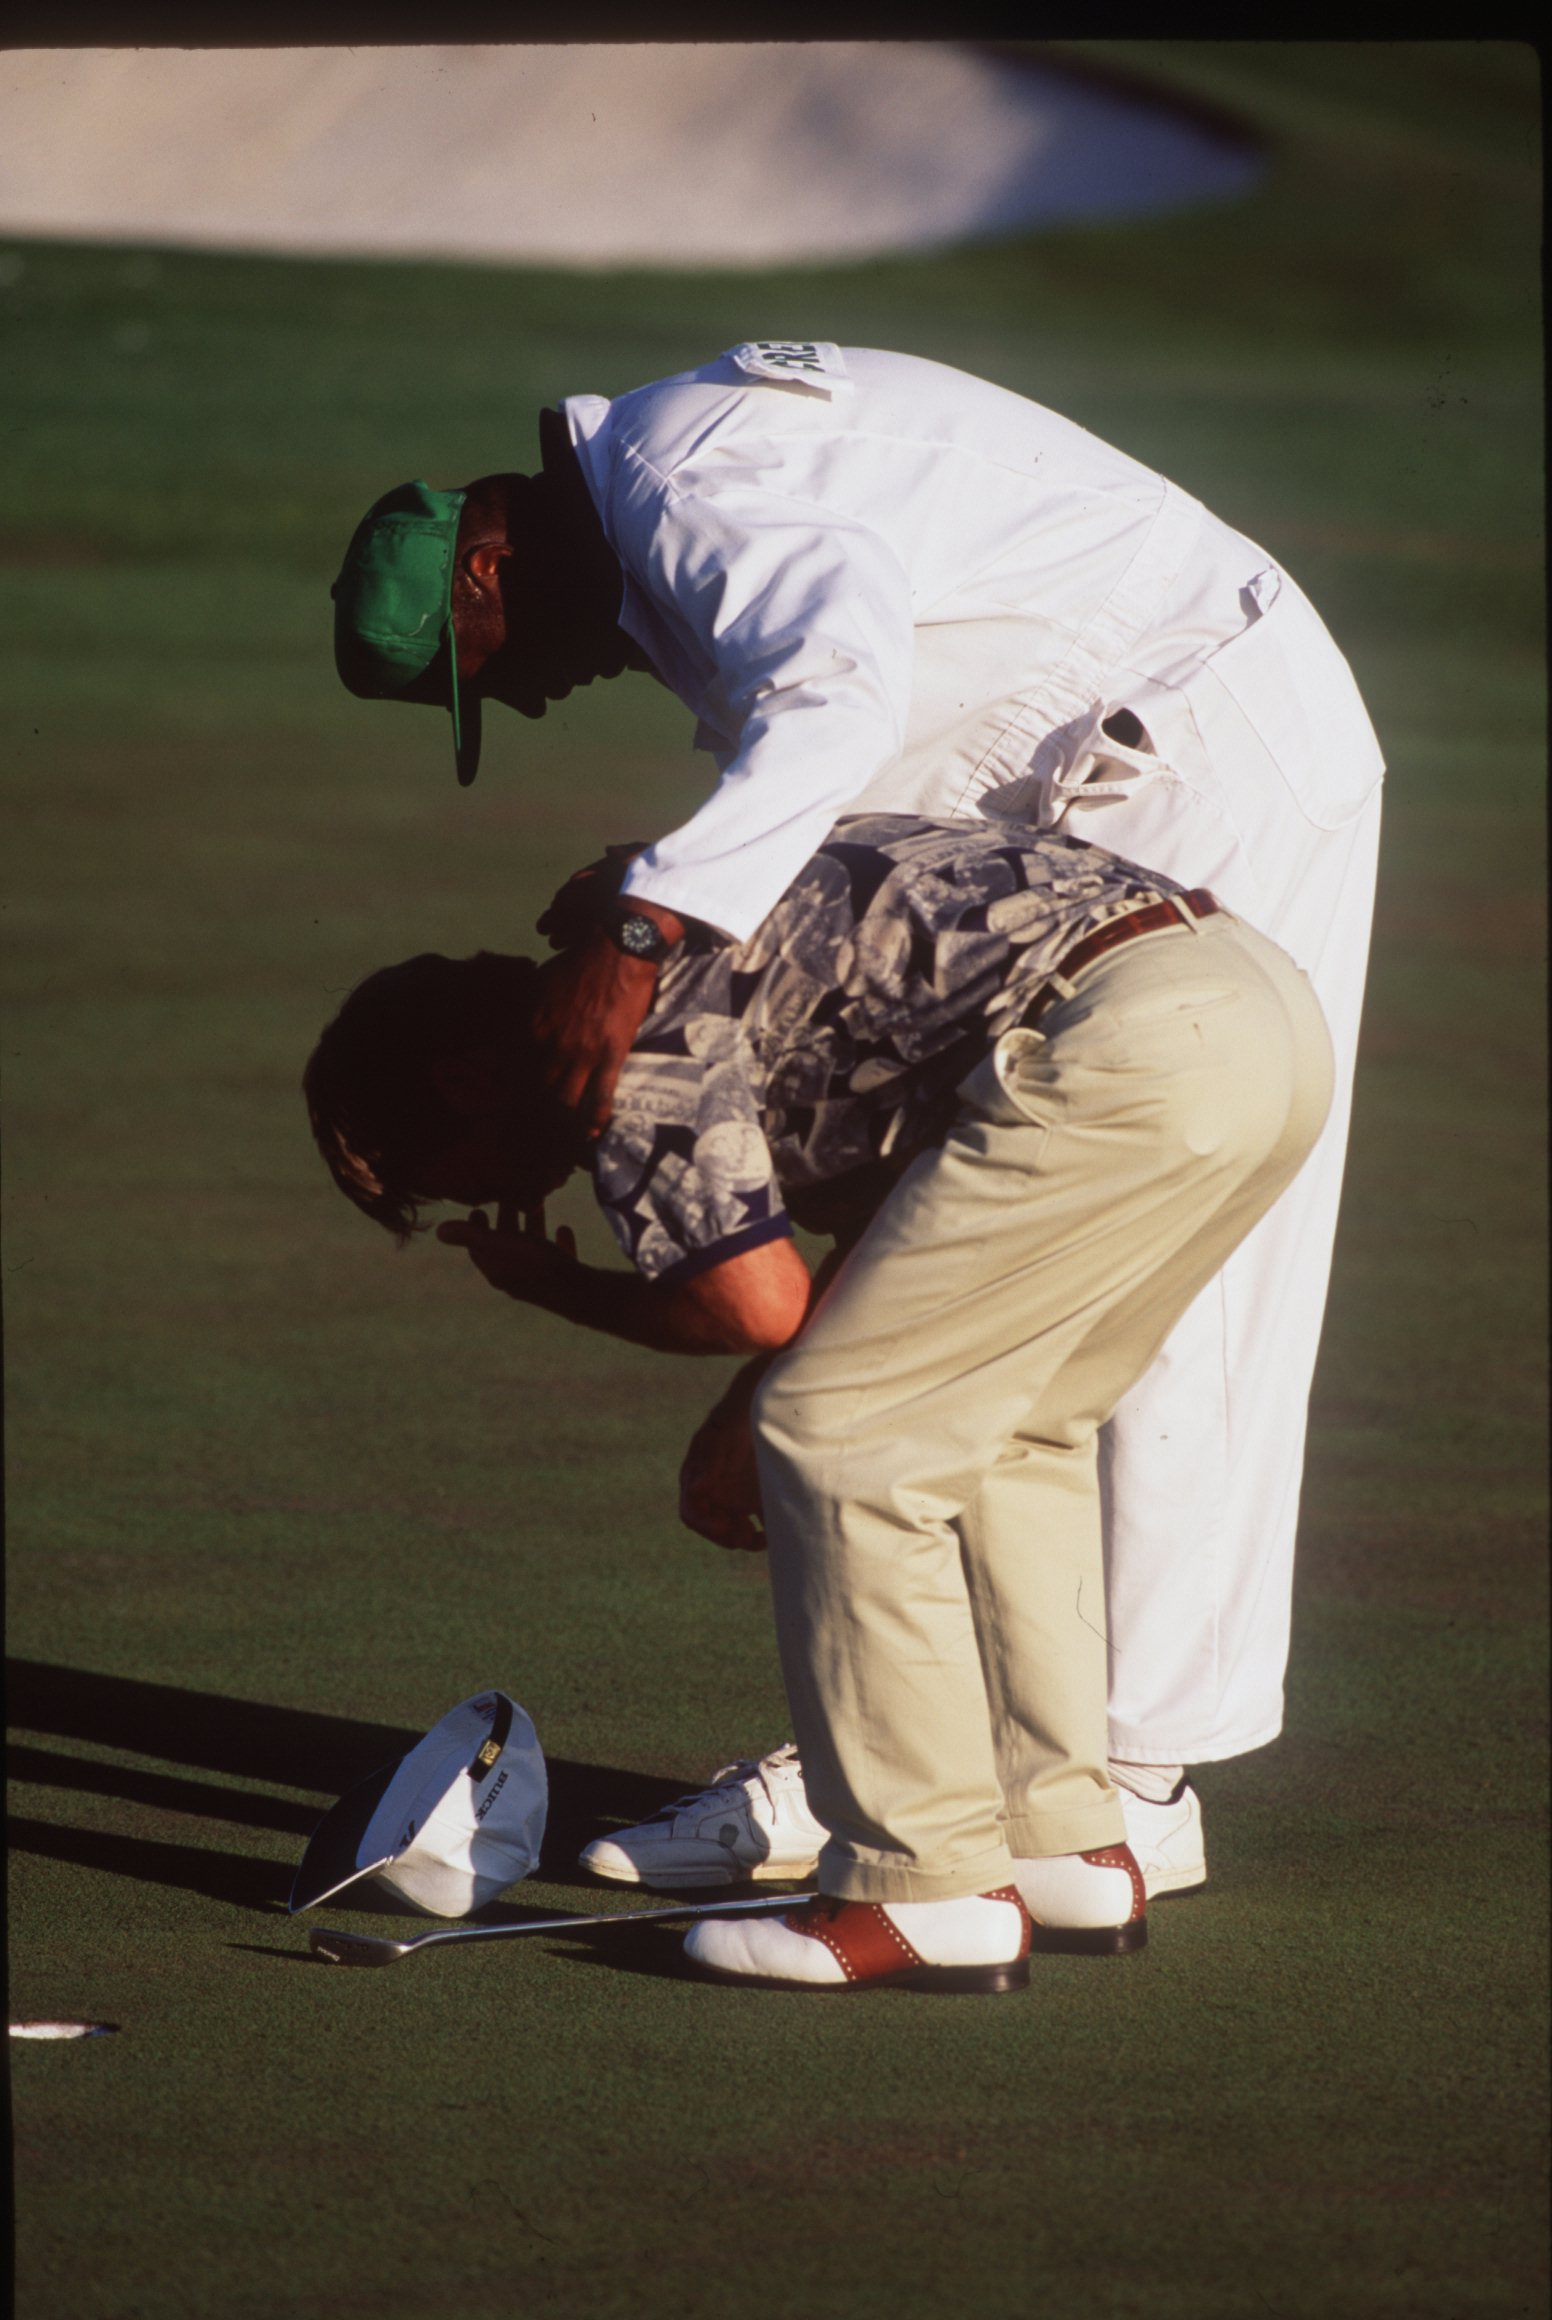 9 APR 1995:  AN EMOTONAL BEN CRENSHAW OF THE USA IS CONGRATULATED BY HIS CADDIE ON THE 18TH GREEN AFTER WINNING THE 1995 US MASTERS GOLF CHAMPIONSHIP AT THE AUGUSTA NATIONAL GOLF COURSE IN AUGUSTA, GEORGIA. Mandatory Credit: Steve Munday/ALLSPORT